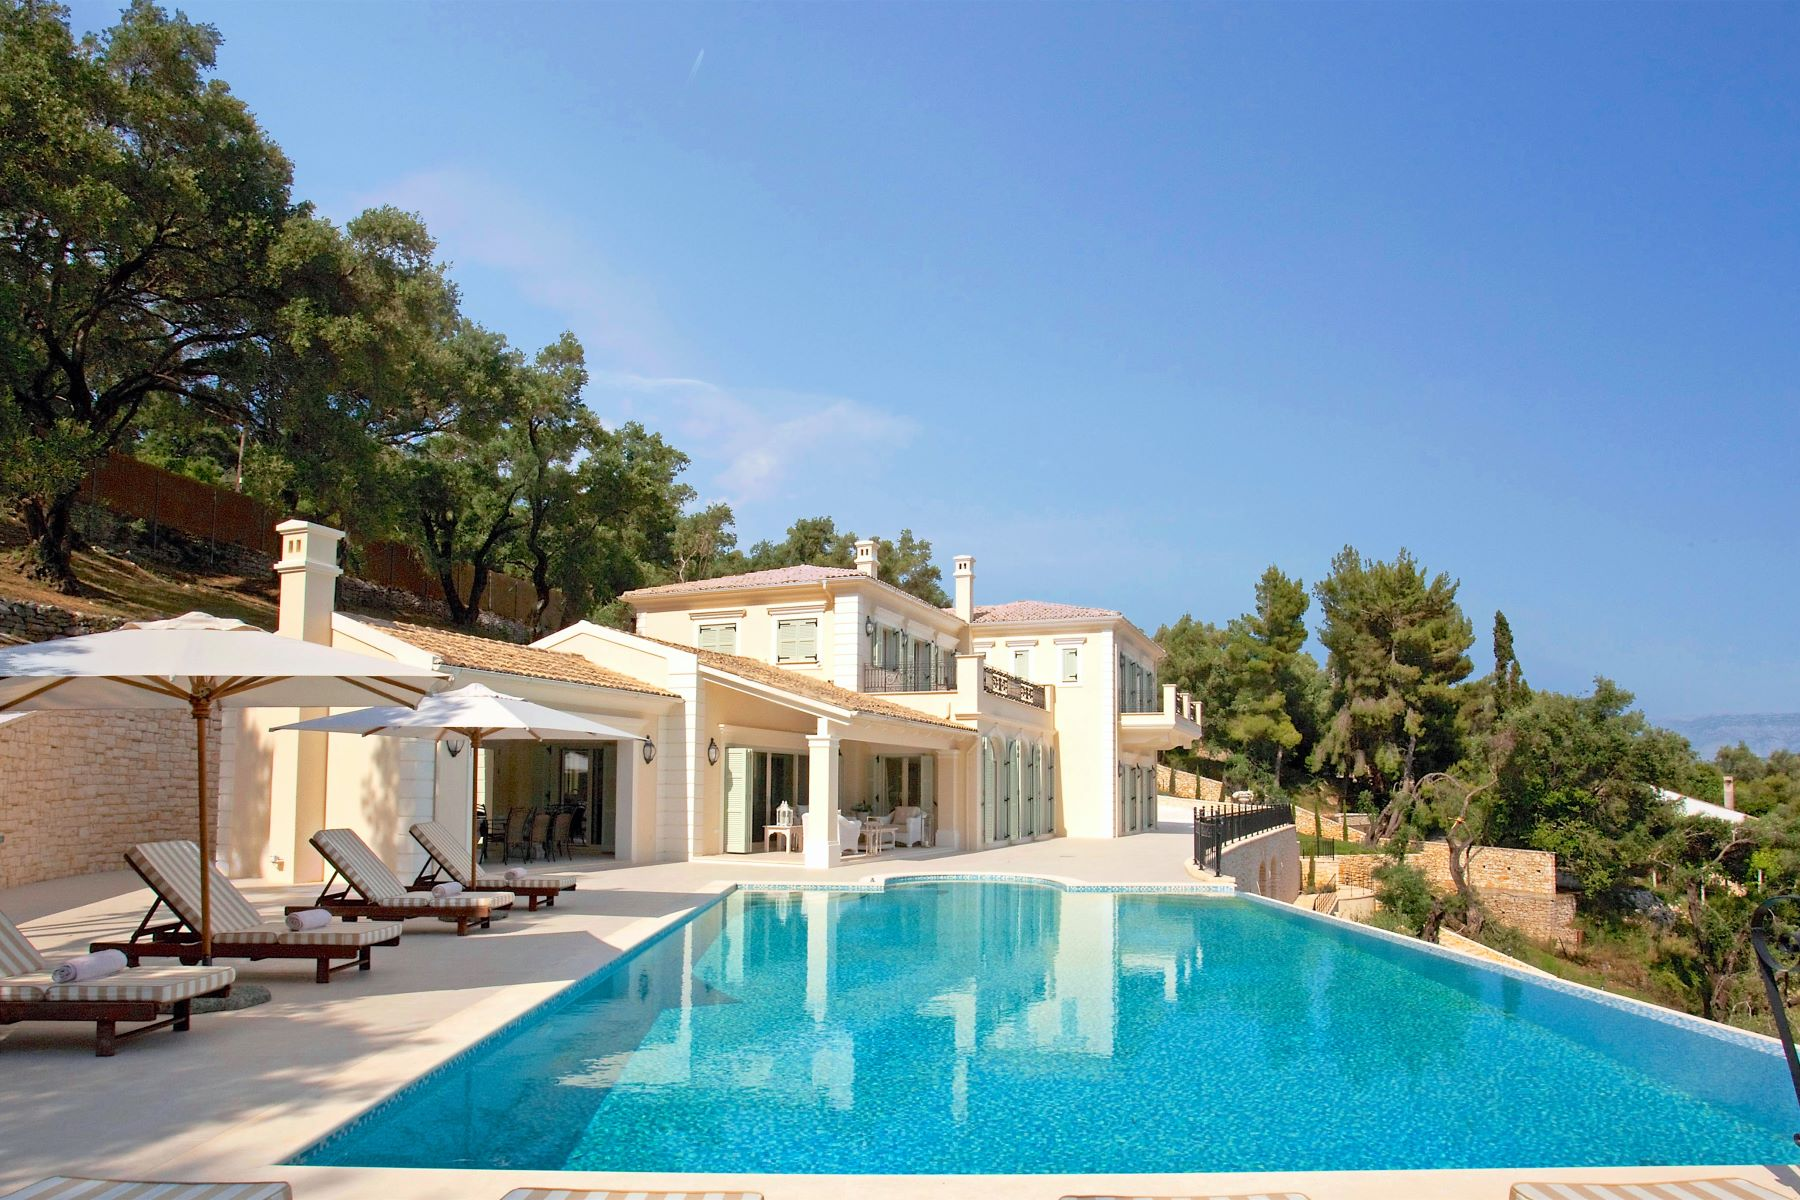 Single Family Home for Sale at MOMENTUM Corfu, Ionian Islands, Greece